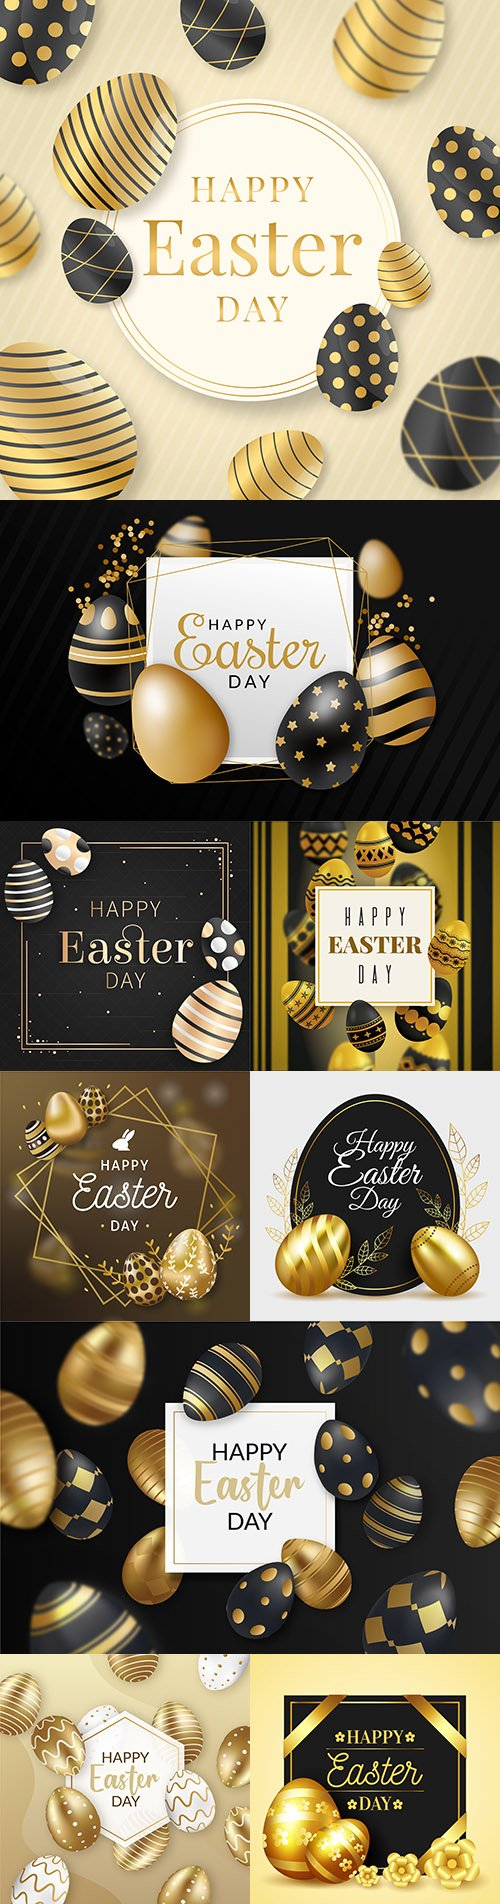 Happy Easter golden eggs and decorative elements